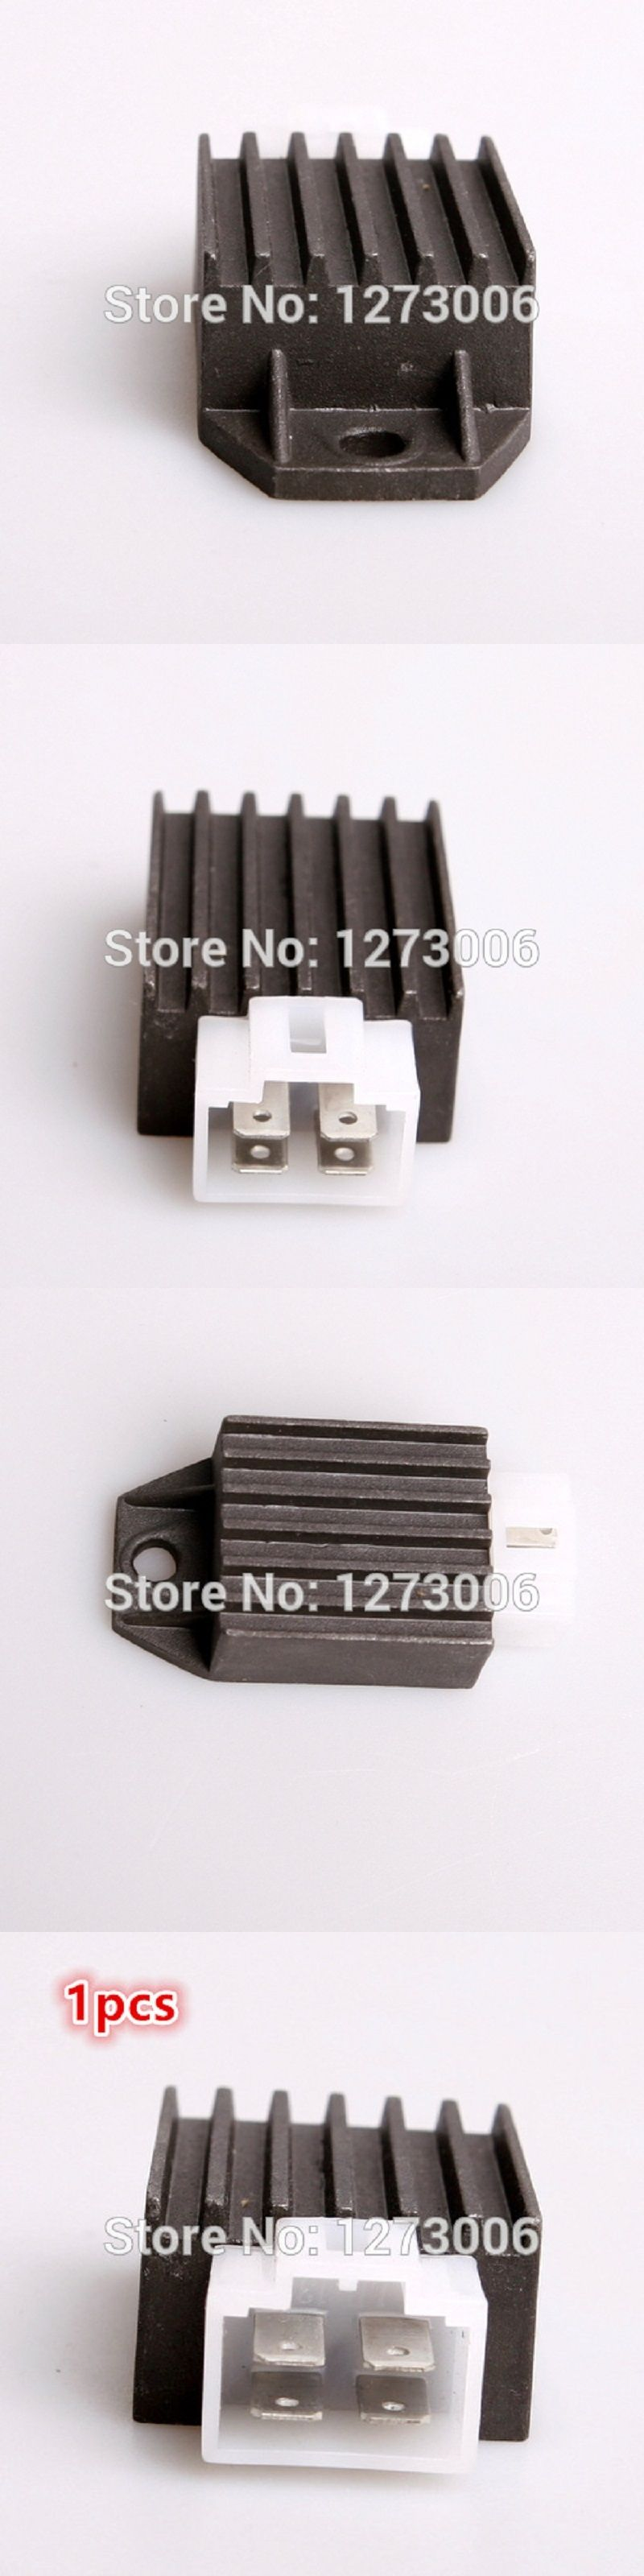 Universal 1pcs 12v Gy6125 4 Wire Male Plug Voltage Regulator Honda Crf Rectifier Wiring Motorcycle Atv 50cc 150cc